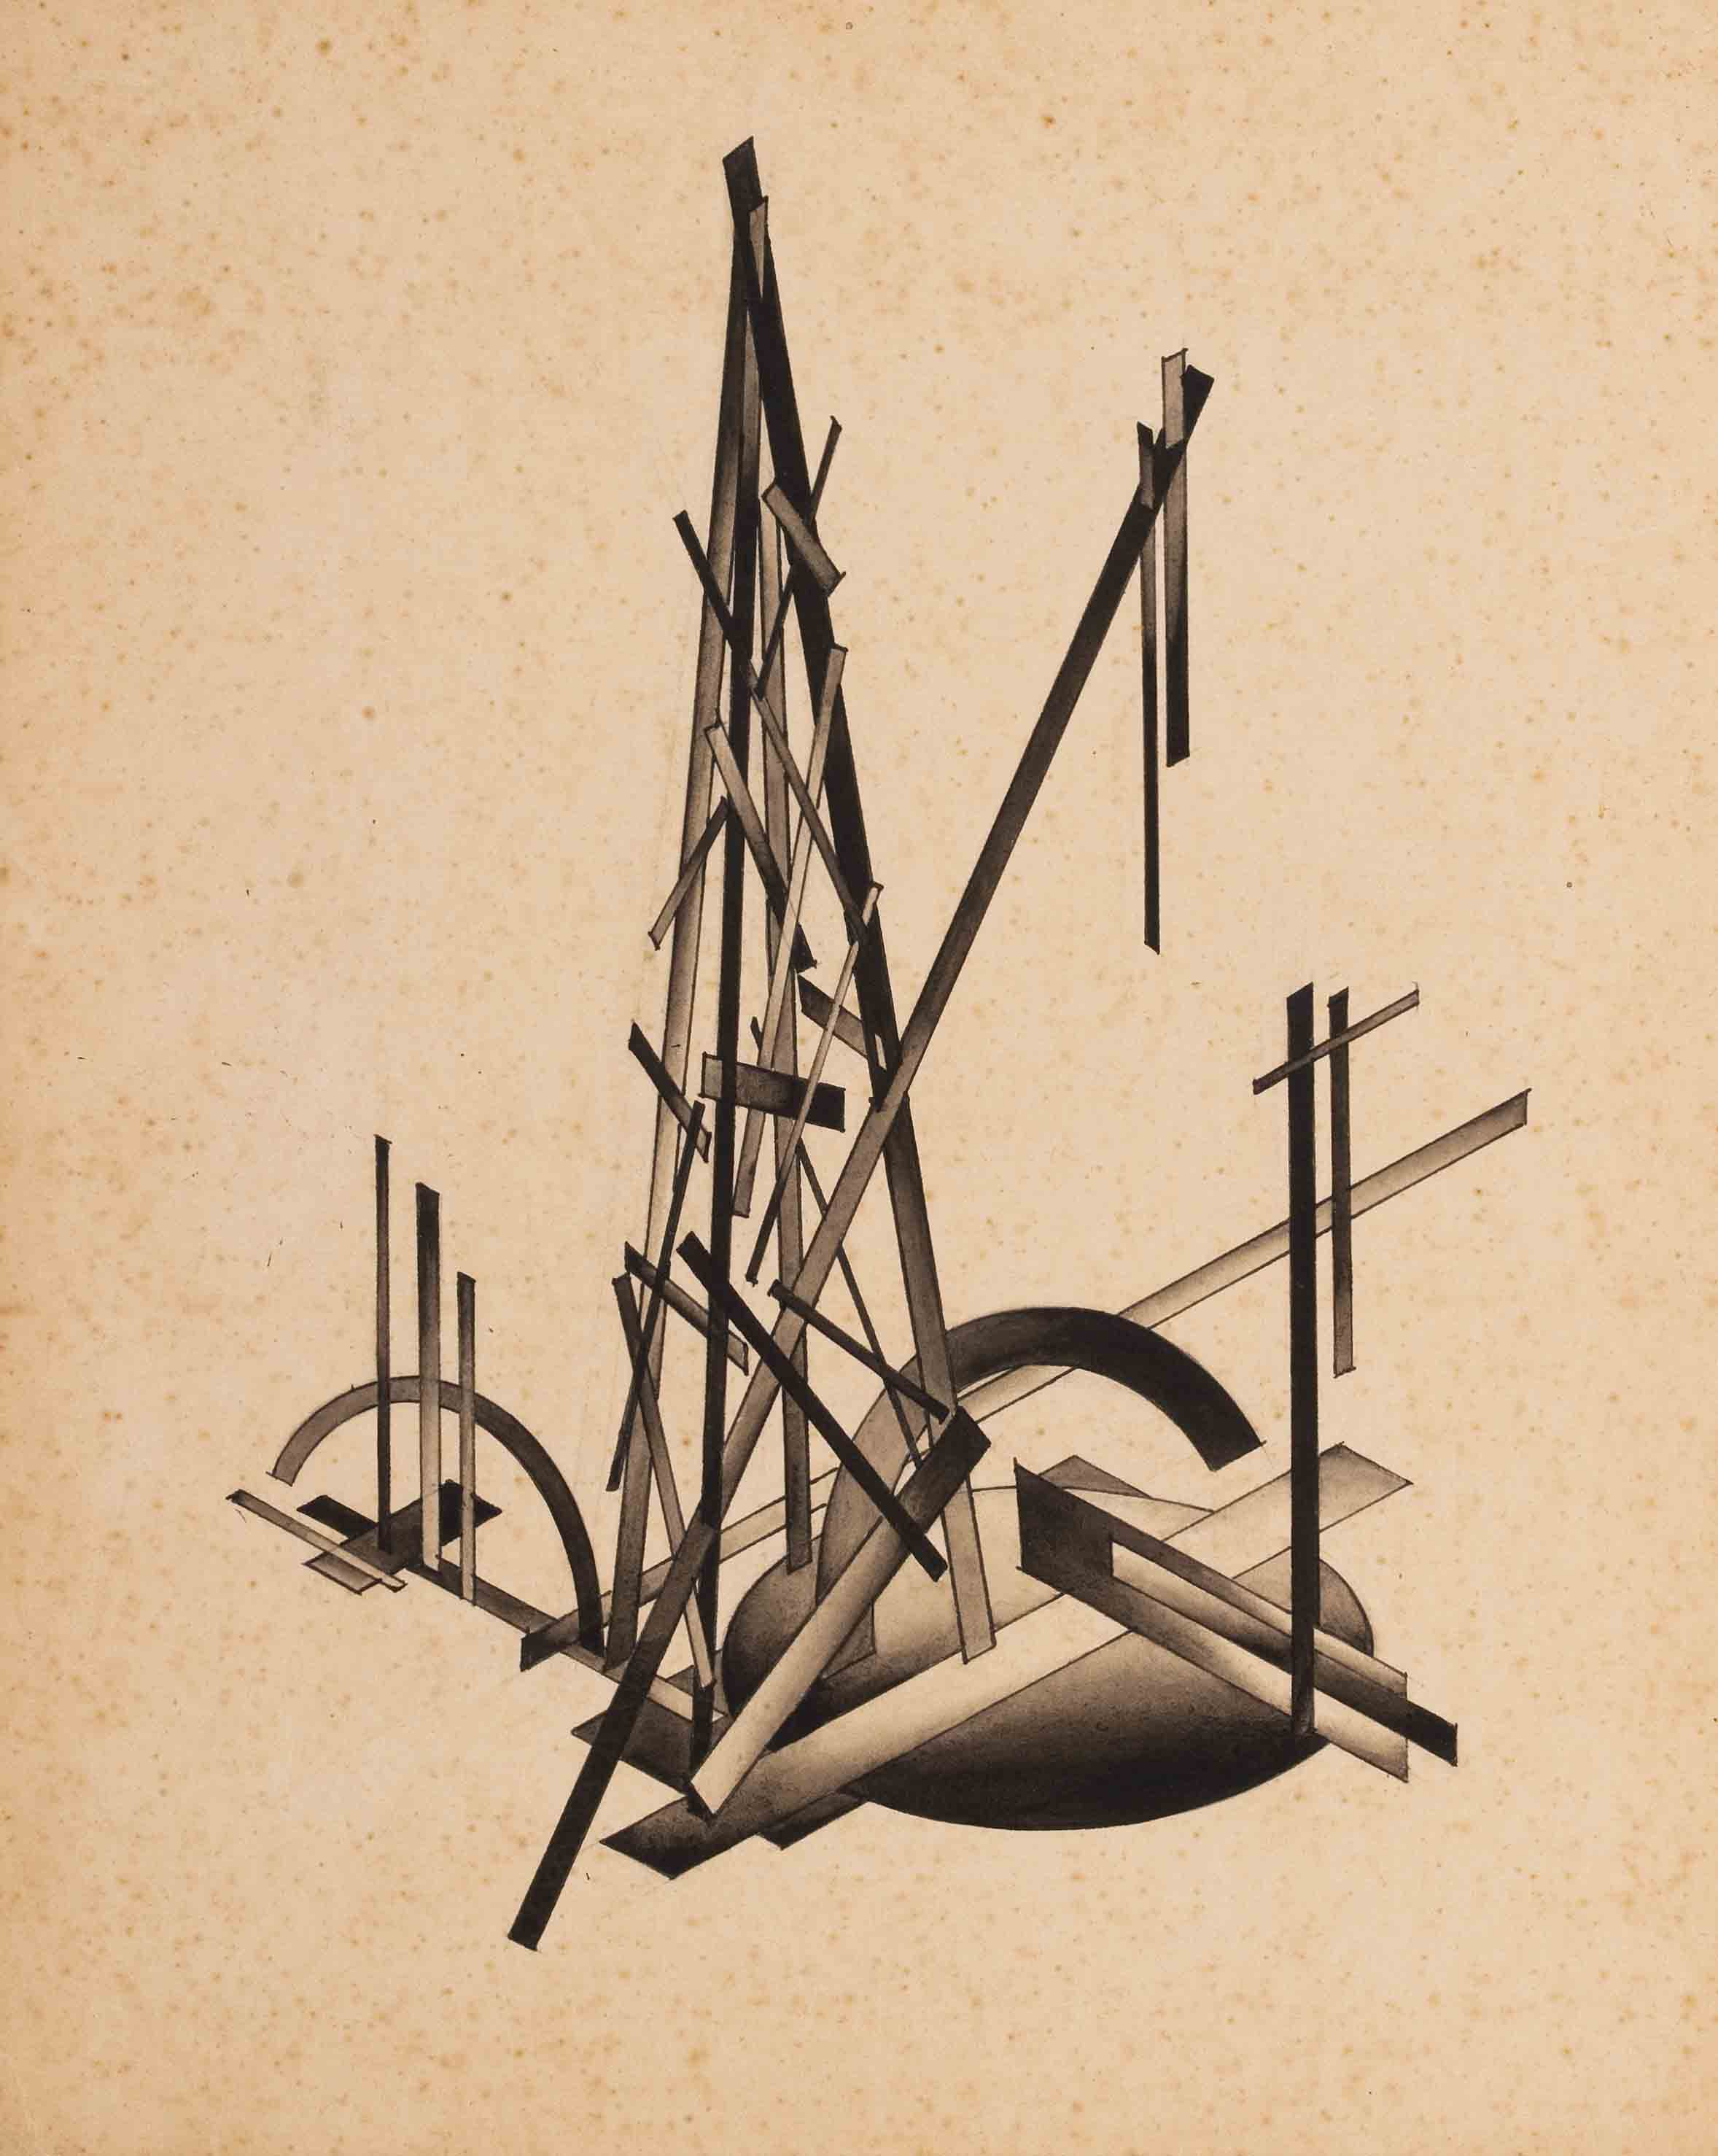 Nonconstructive Union of Planes from the series Fundamentals of Modern Architecture, late 1920s - Yakov Chernikhov